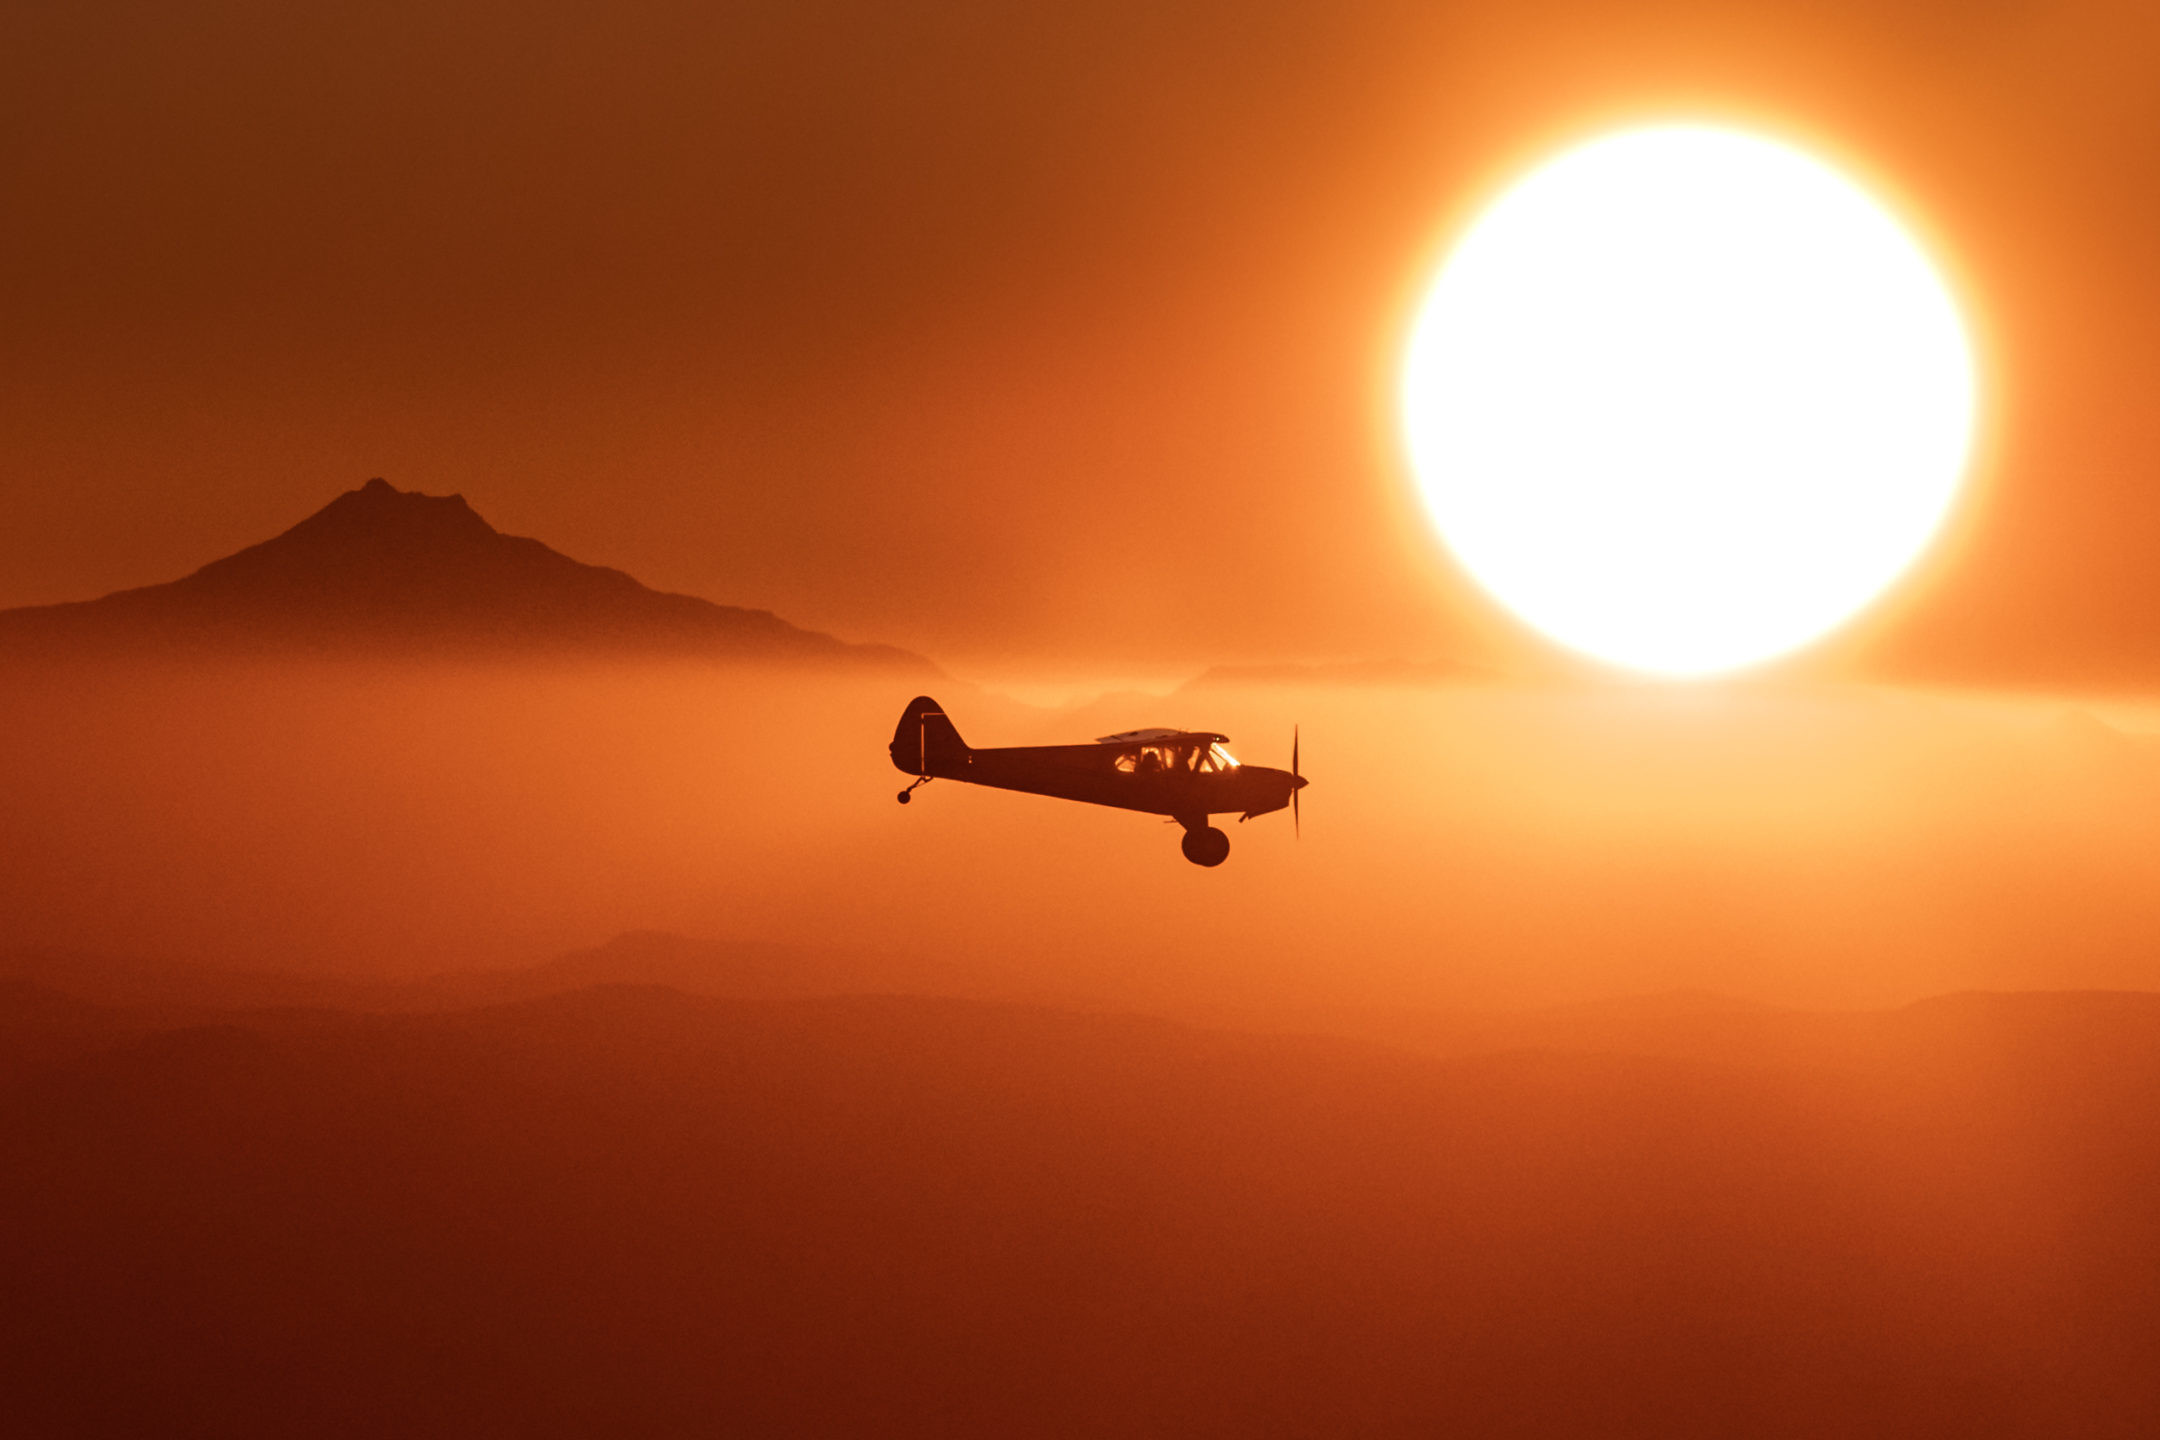 Aviation Landscape photography of a Carbon Cub airplane flying over Oregon during sunset.